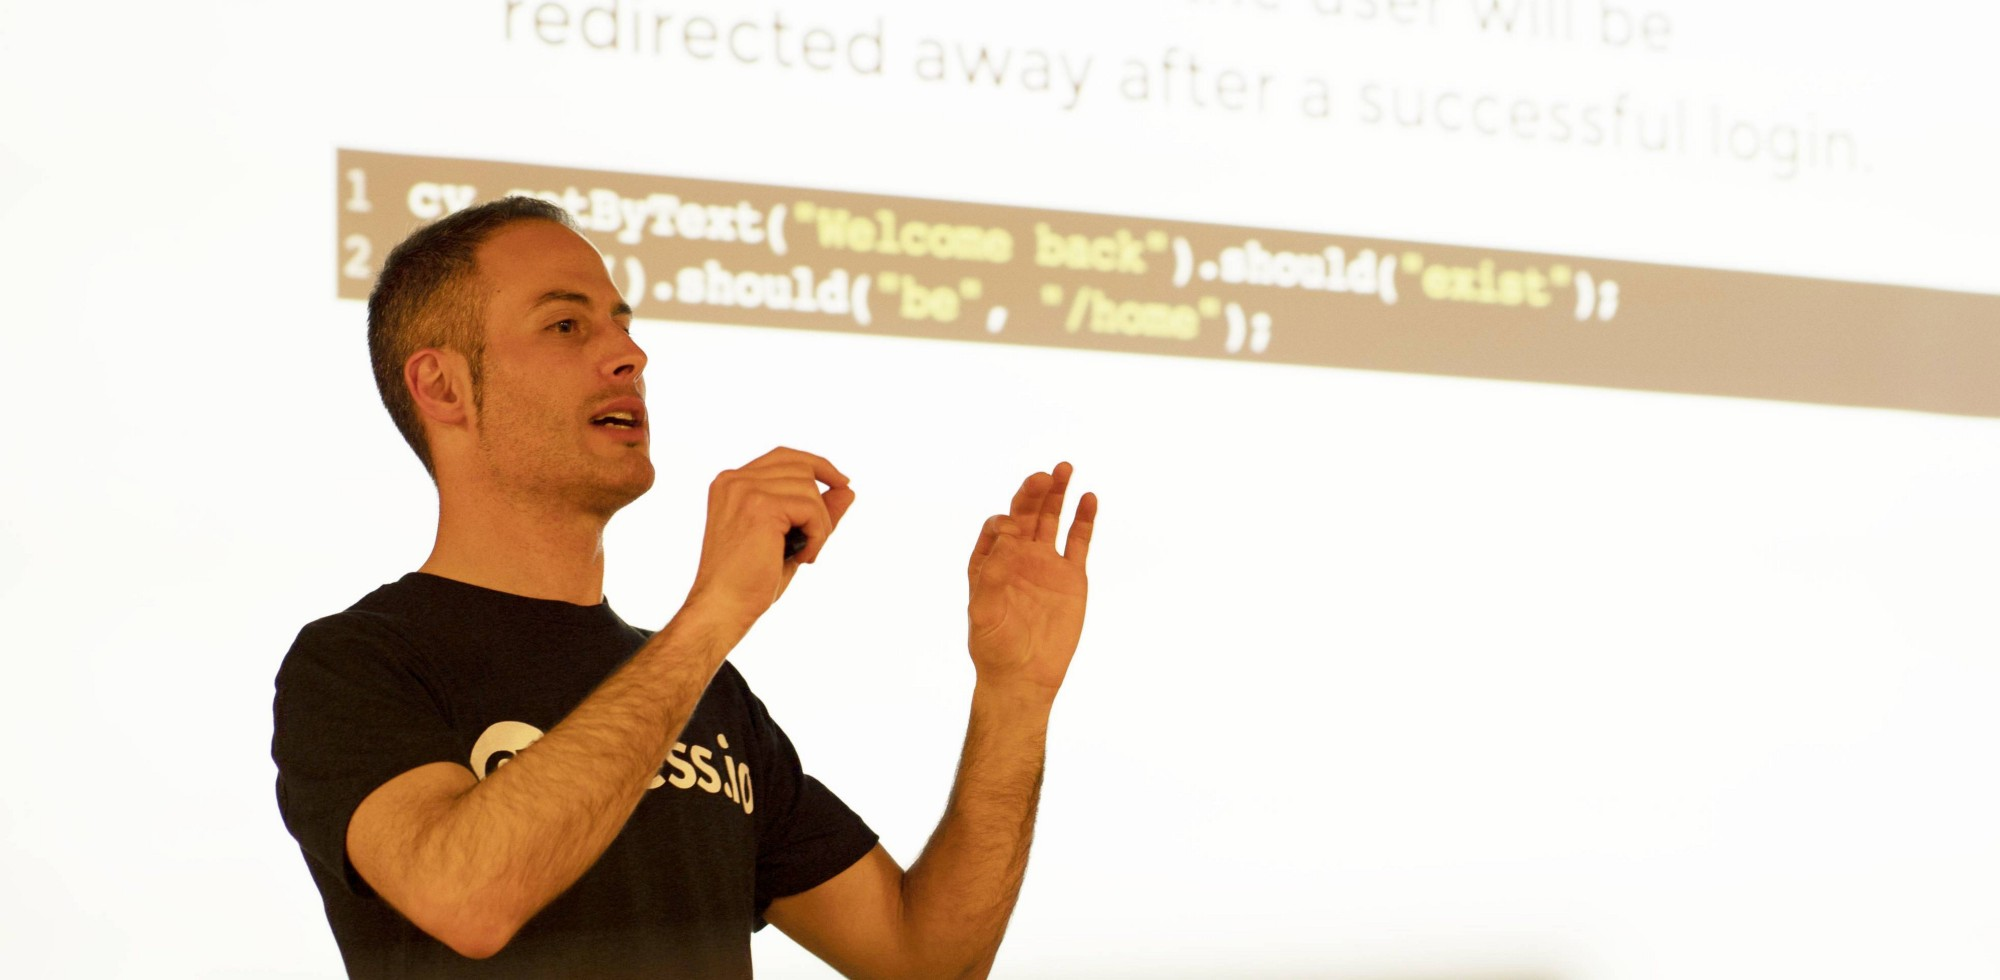 Me speaking at Milano Front-end.